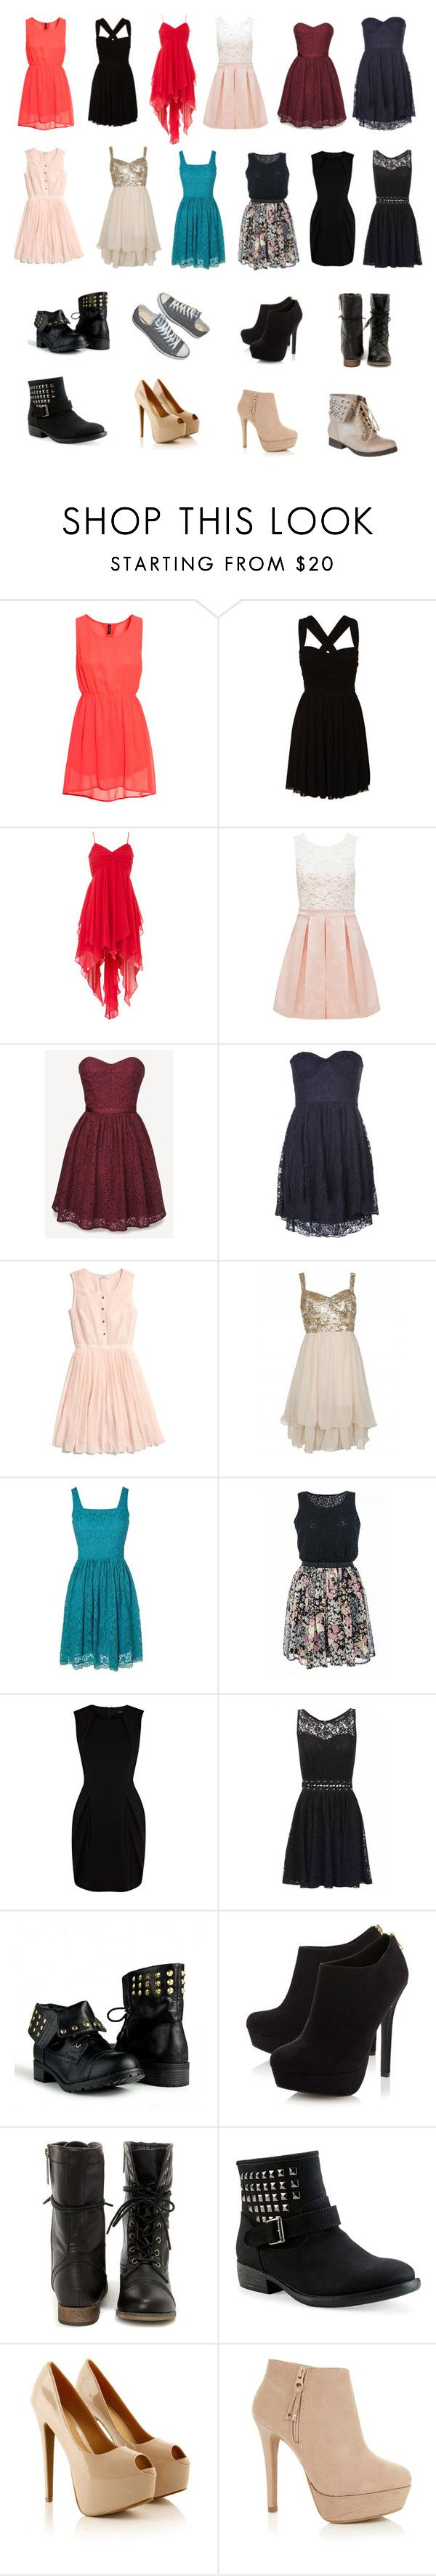 """""""Binge Shopping 2"""" by directioner1013 ❤ liked on Polyvore featuring H&M, Forever New, Jack Wills, Motel, Madewell, Poem, Quiz, Karen Millen, Head Over Heels by Dune and Aéropostale"""